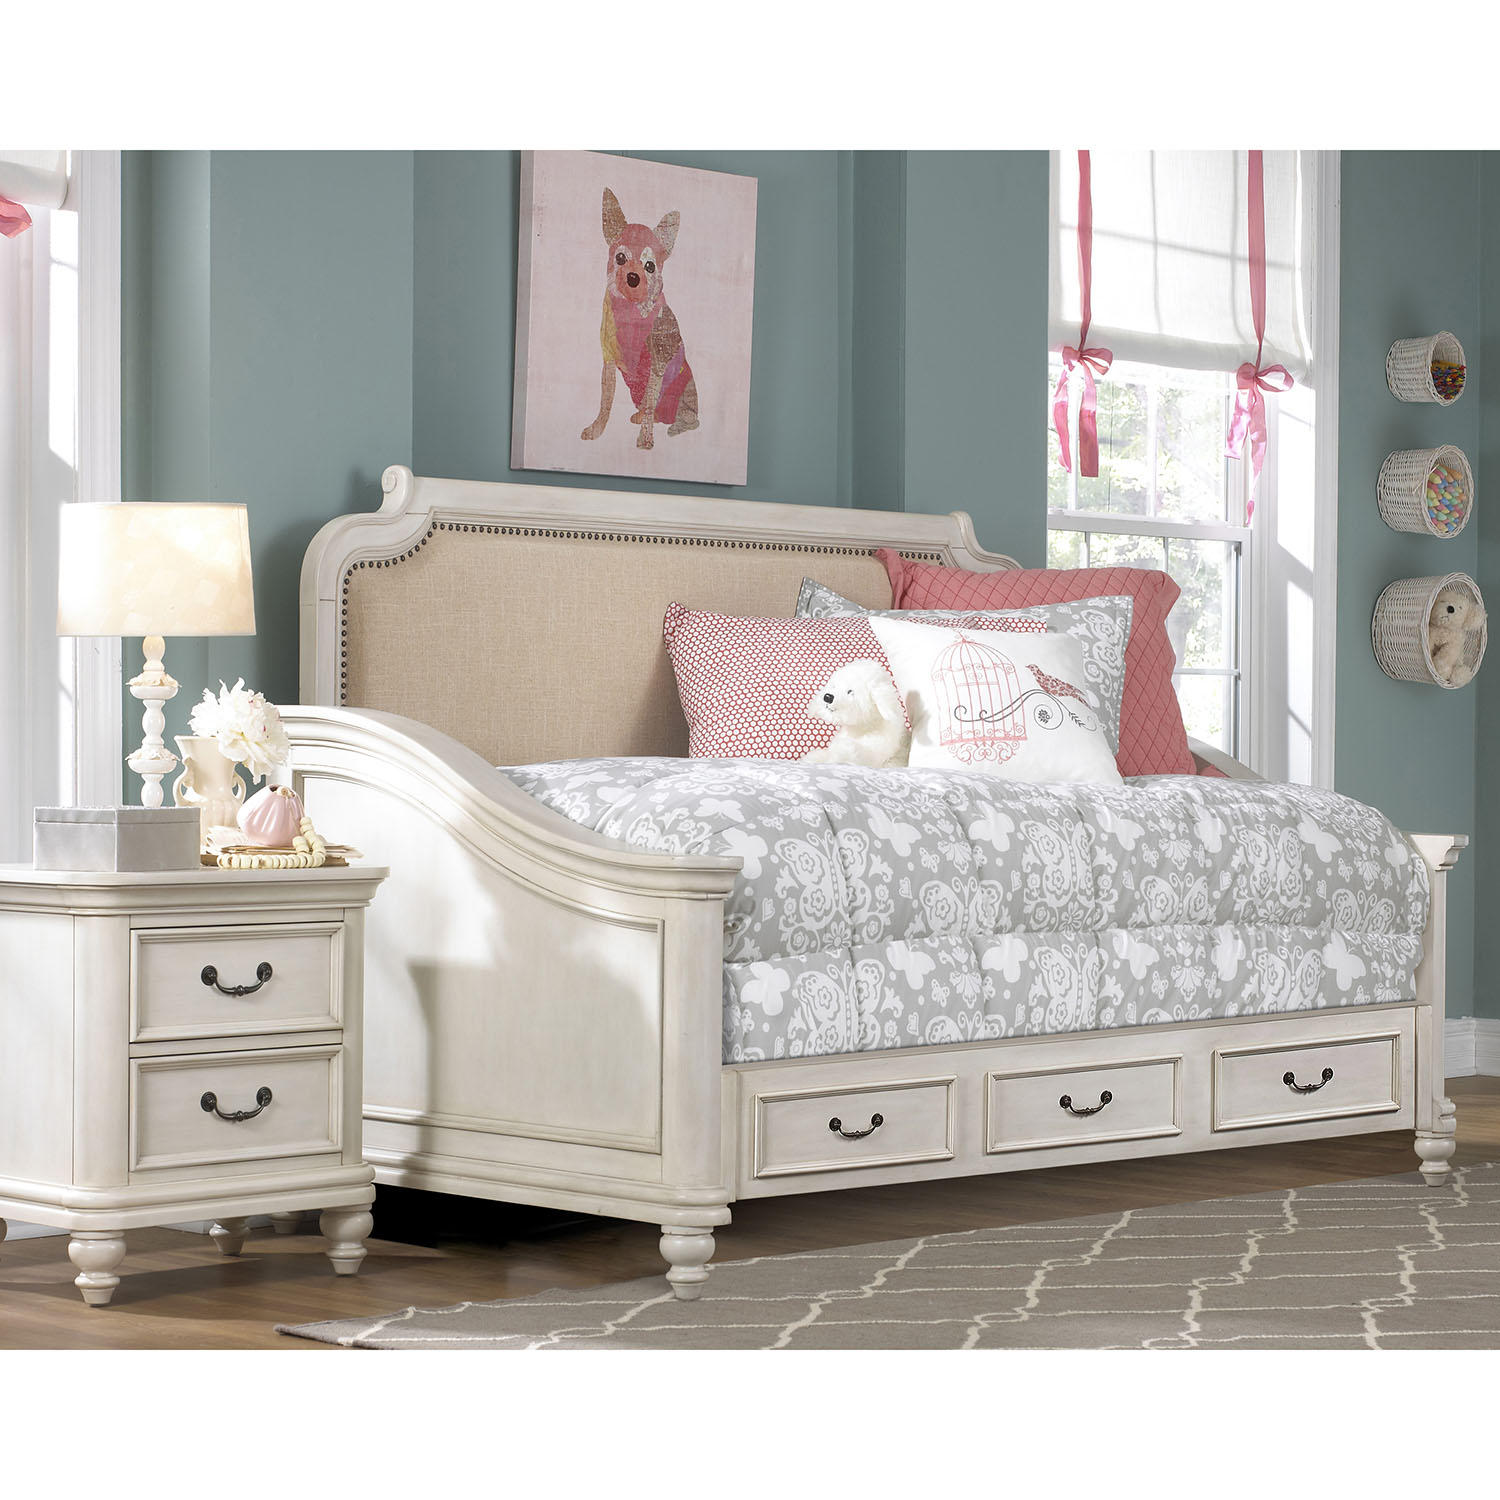 Adaline Daybed with Trundle Bed